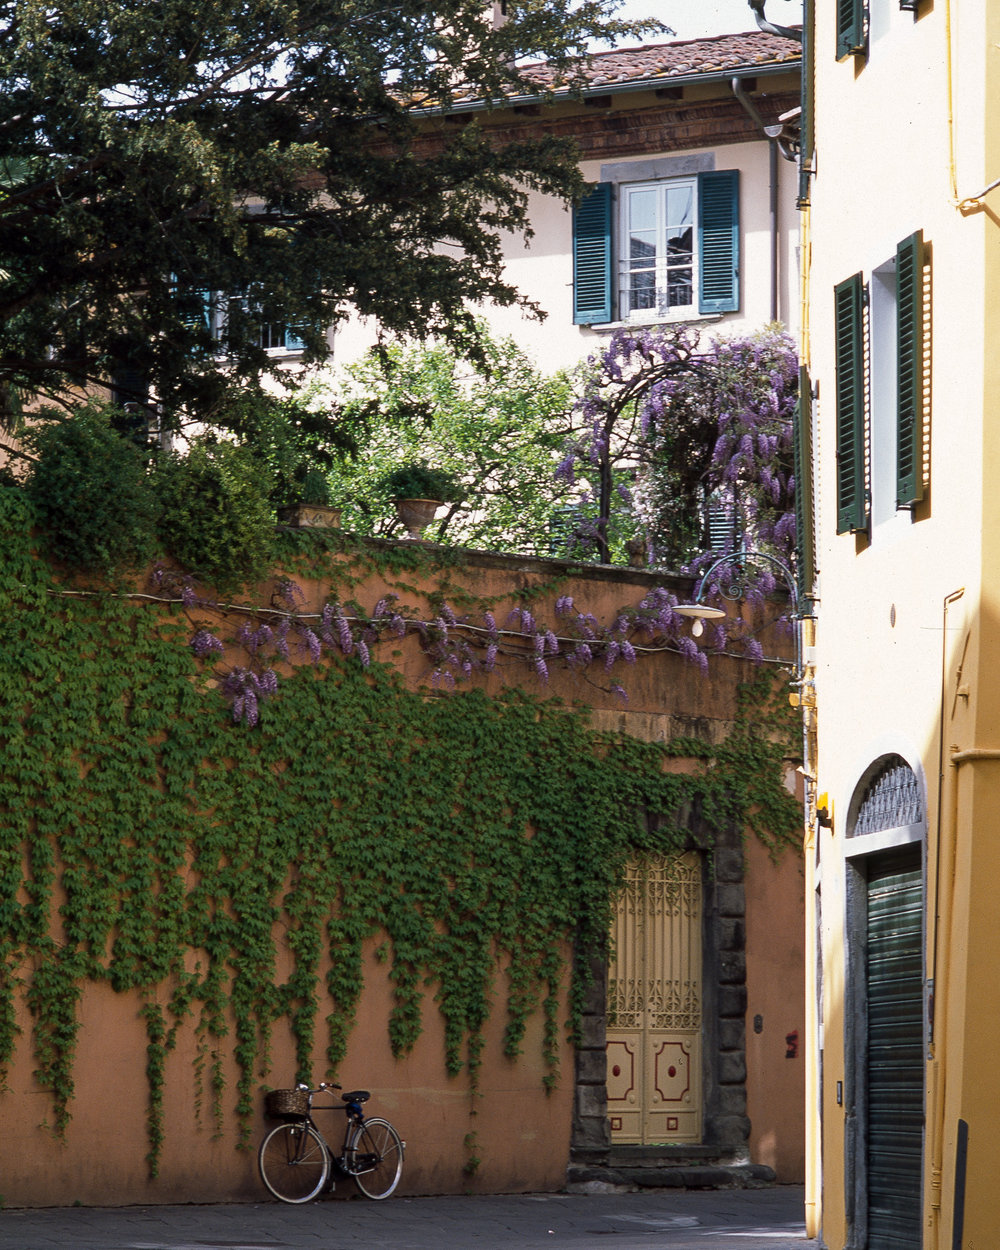 A quiet back street in Lucca, Tuscany